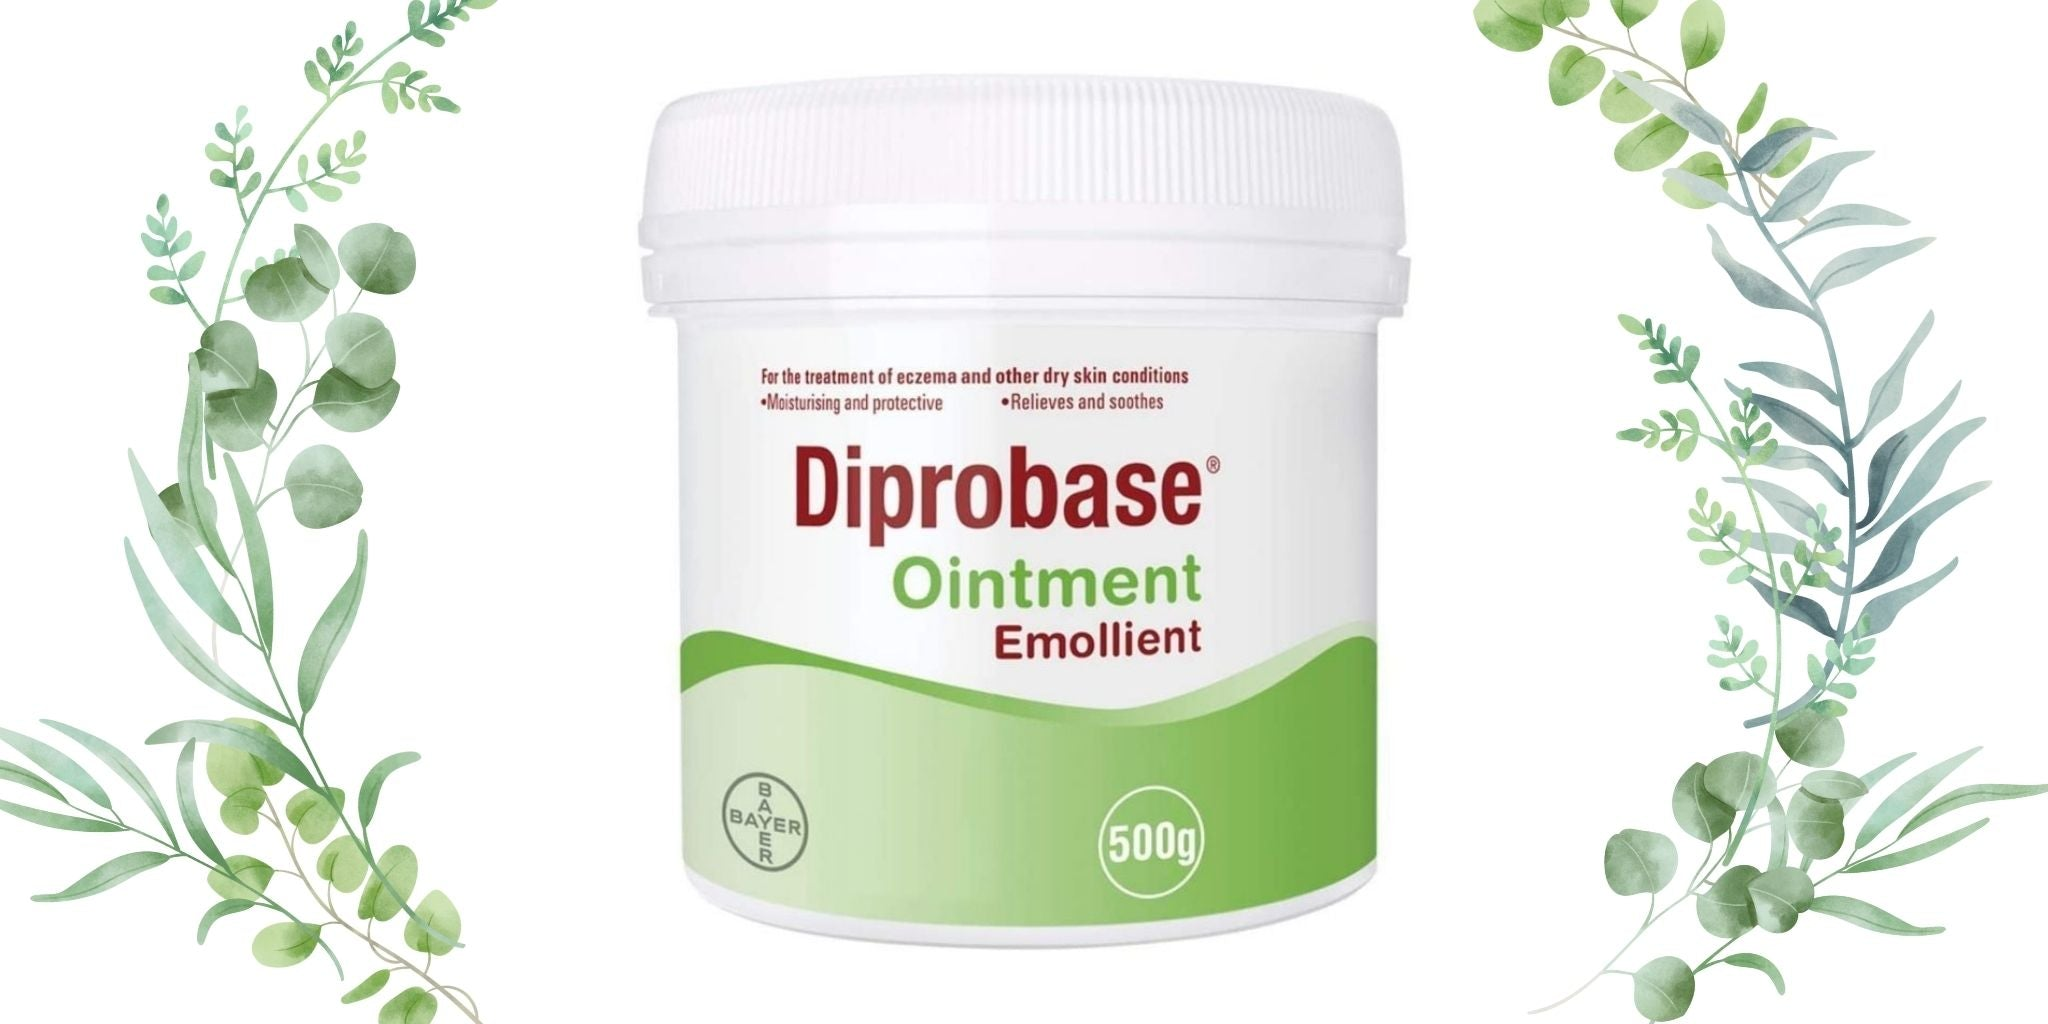 diprobase ointment